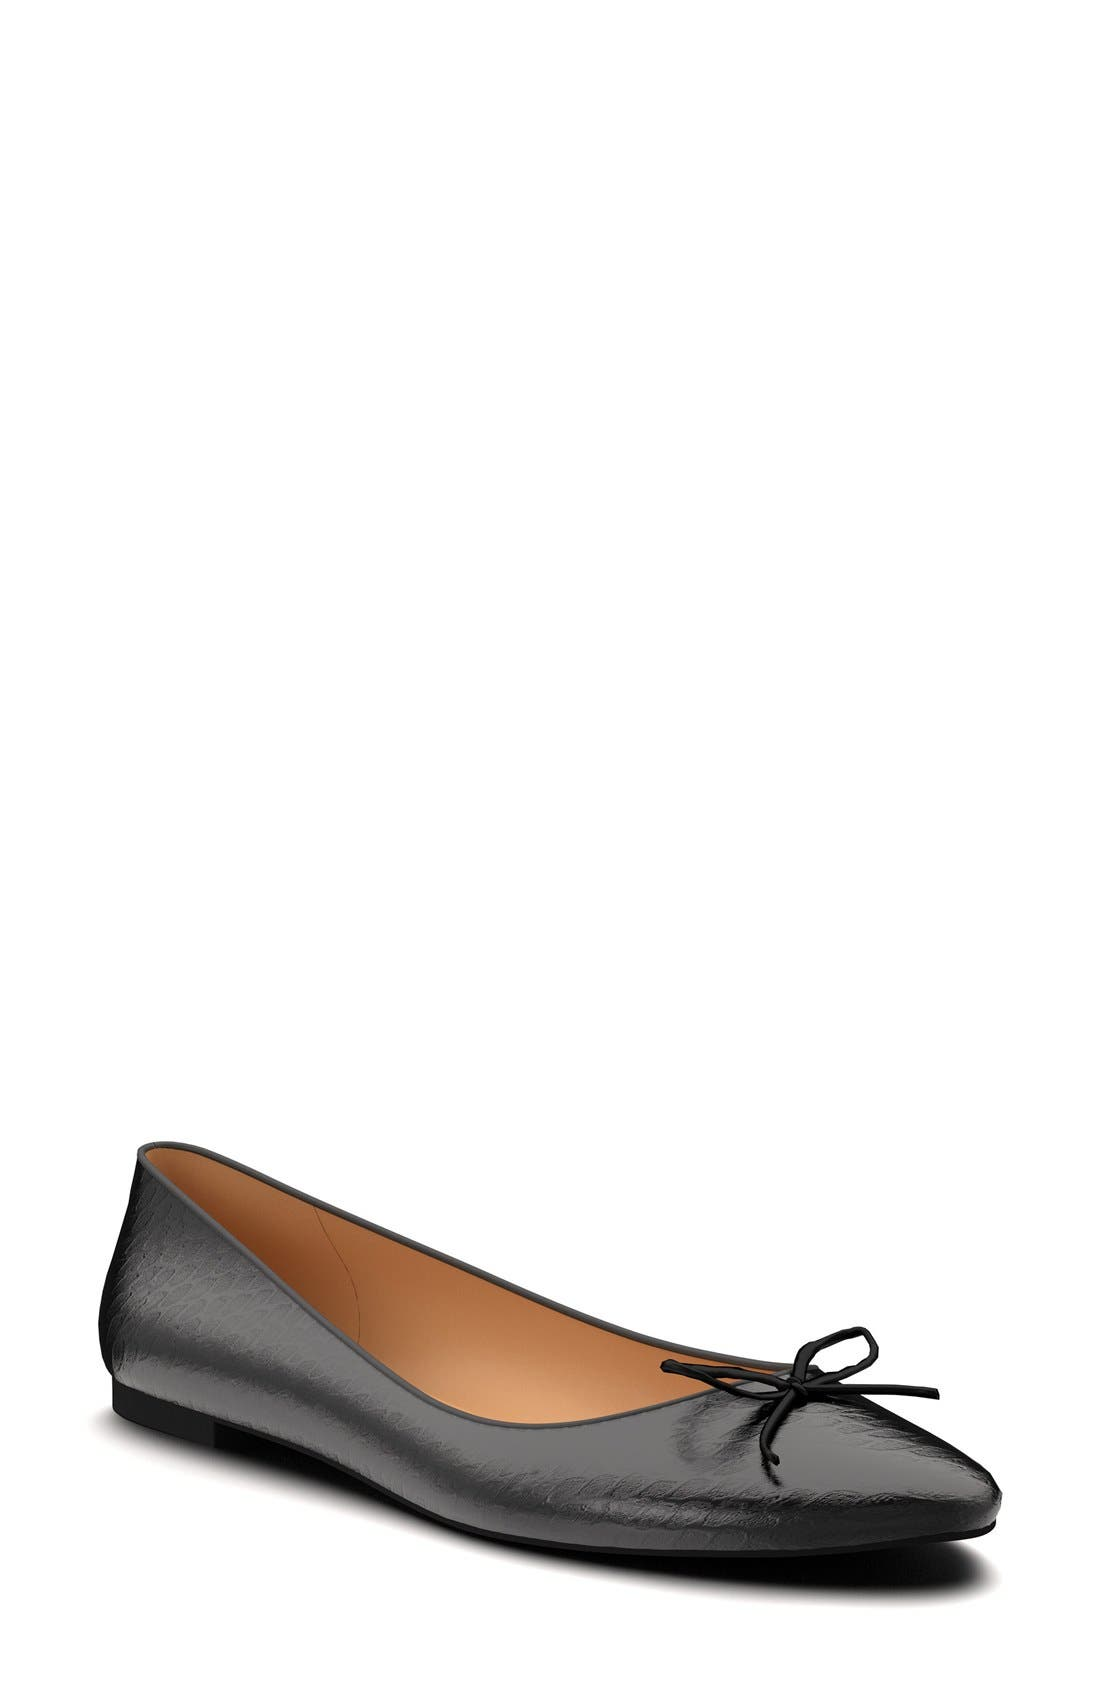 Main Image - Shoes of Prey Ballet Flat (Women)